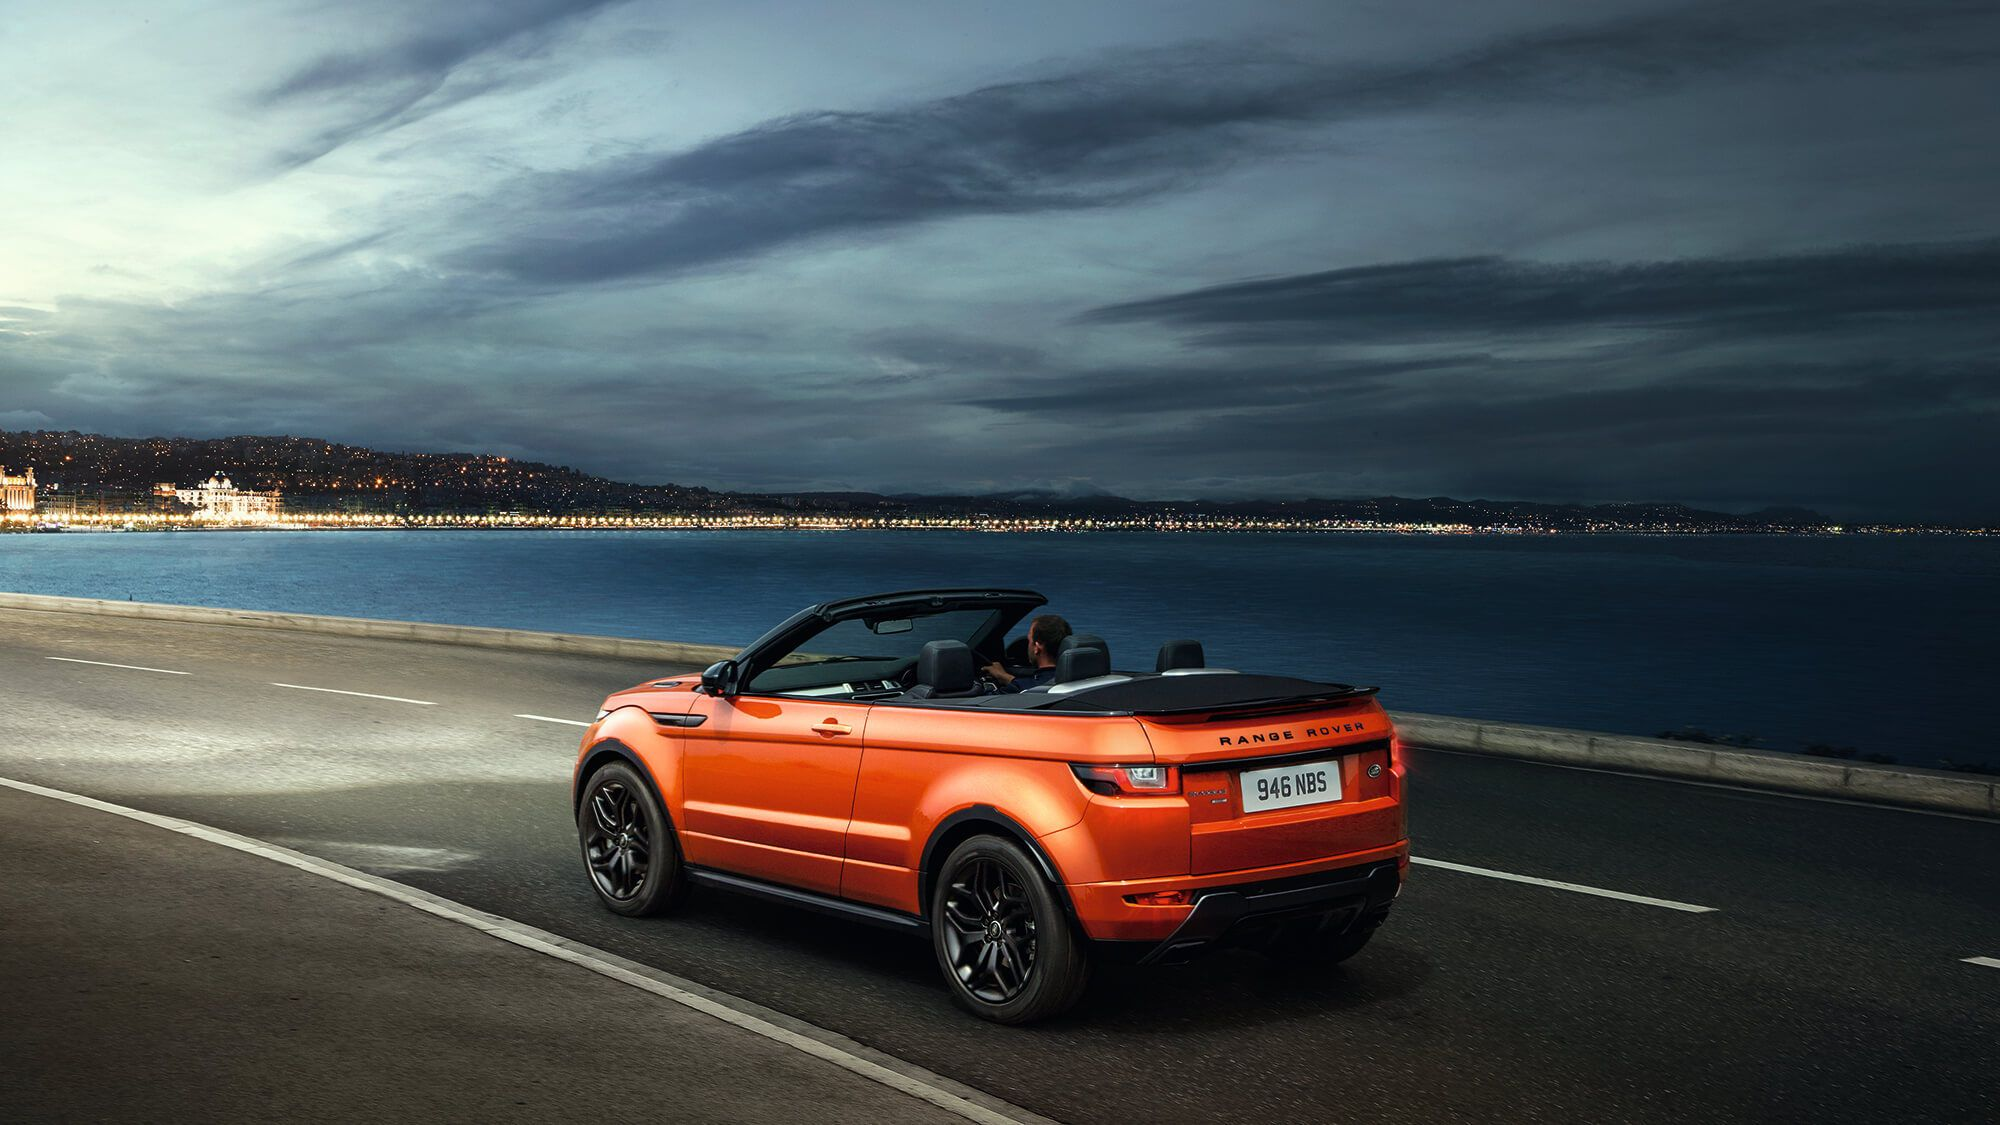 New Range Rover Evoque Convertible for Sale Finance & Part